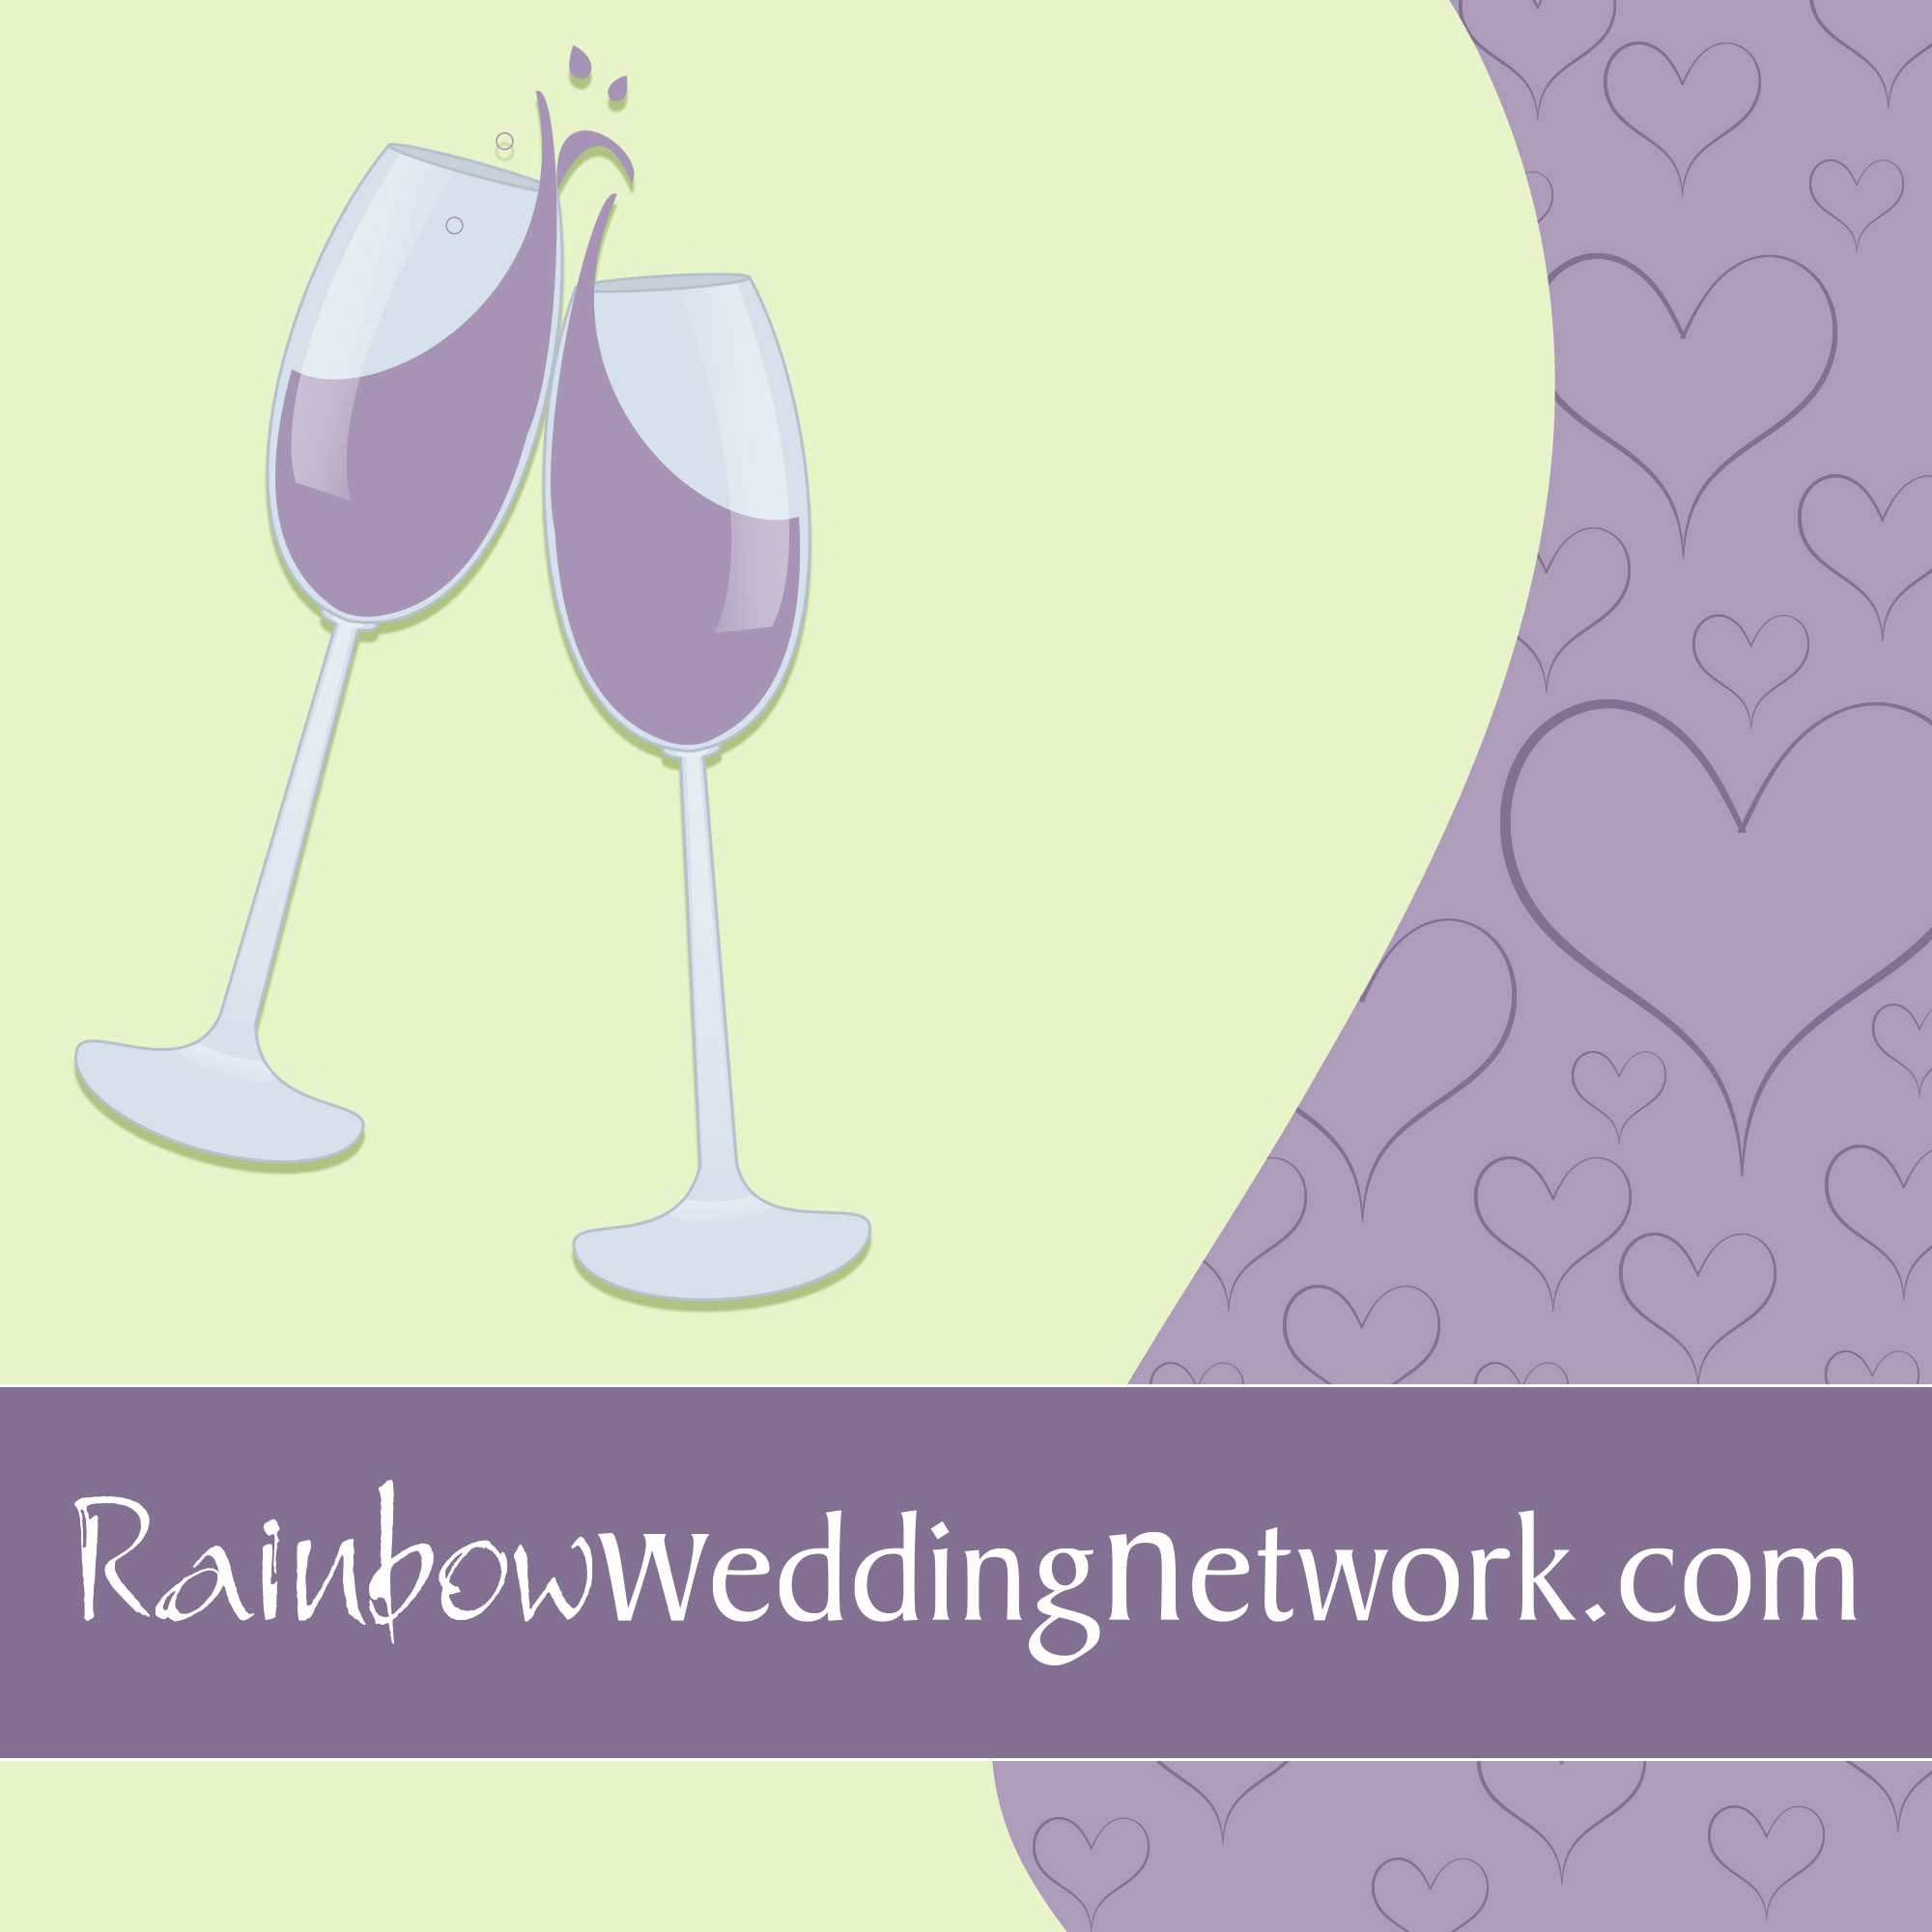 The Gay Wedding Podcast by RainbowWeddingNetwork